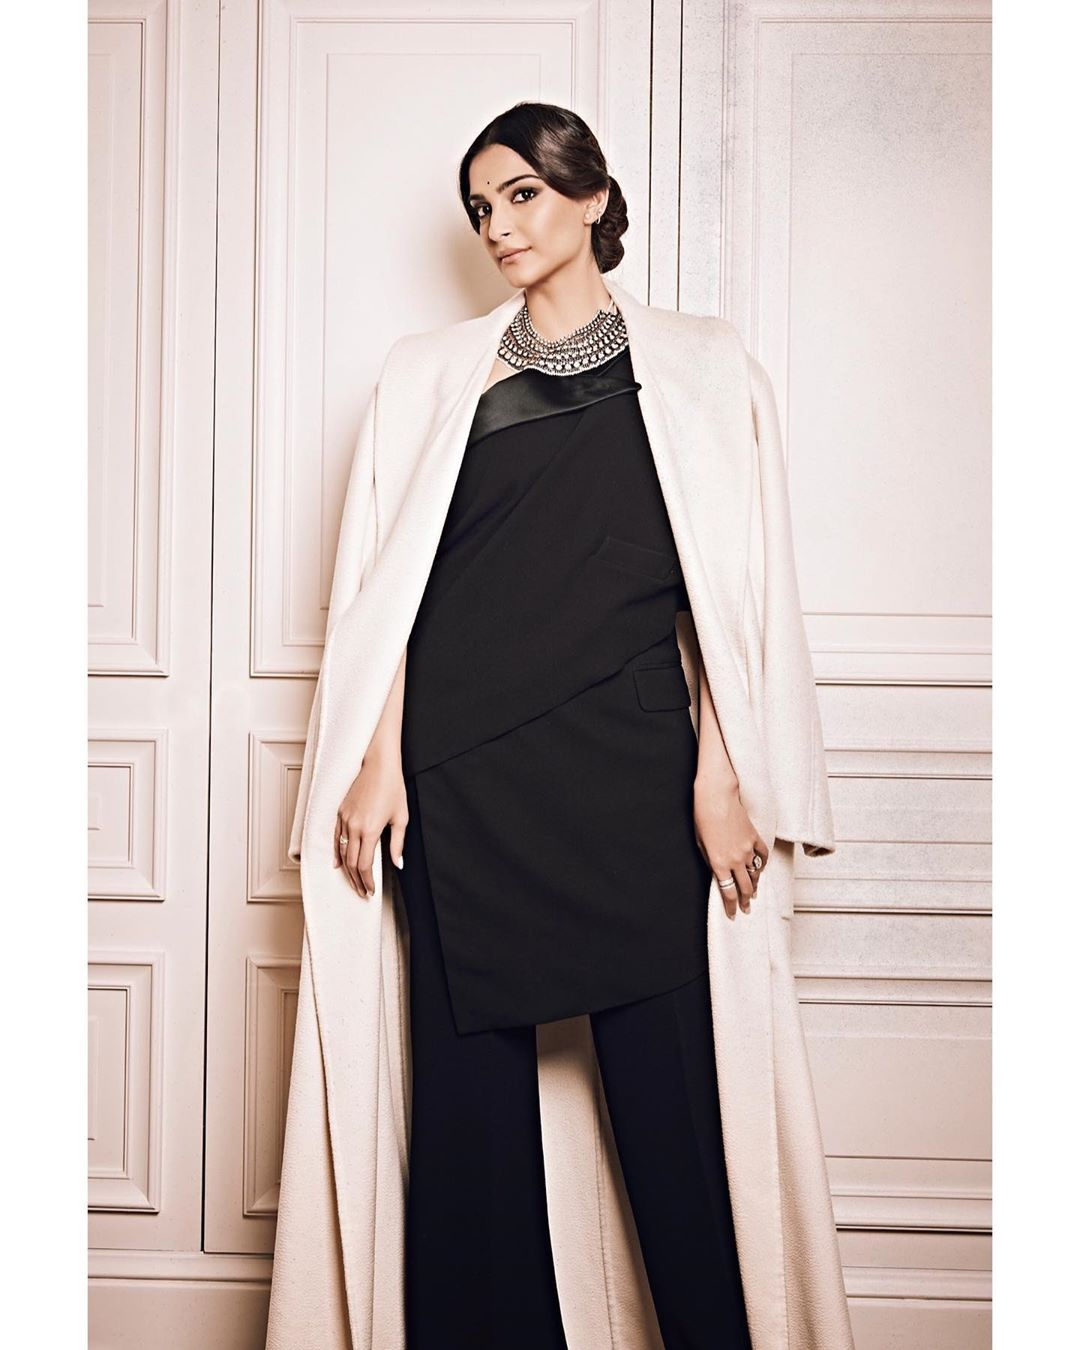 Sonam Kapoor Wearing A Jean Paul Gaultier S Sari Tuxedo In Paris Sonam Kapoor In Saree Buy Sarees Online Sarees Indian Sarees Ladyindia Fashion Trends 2020 Lady India